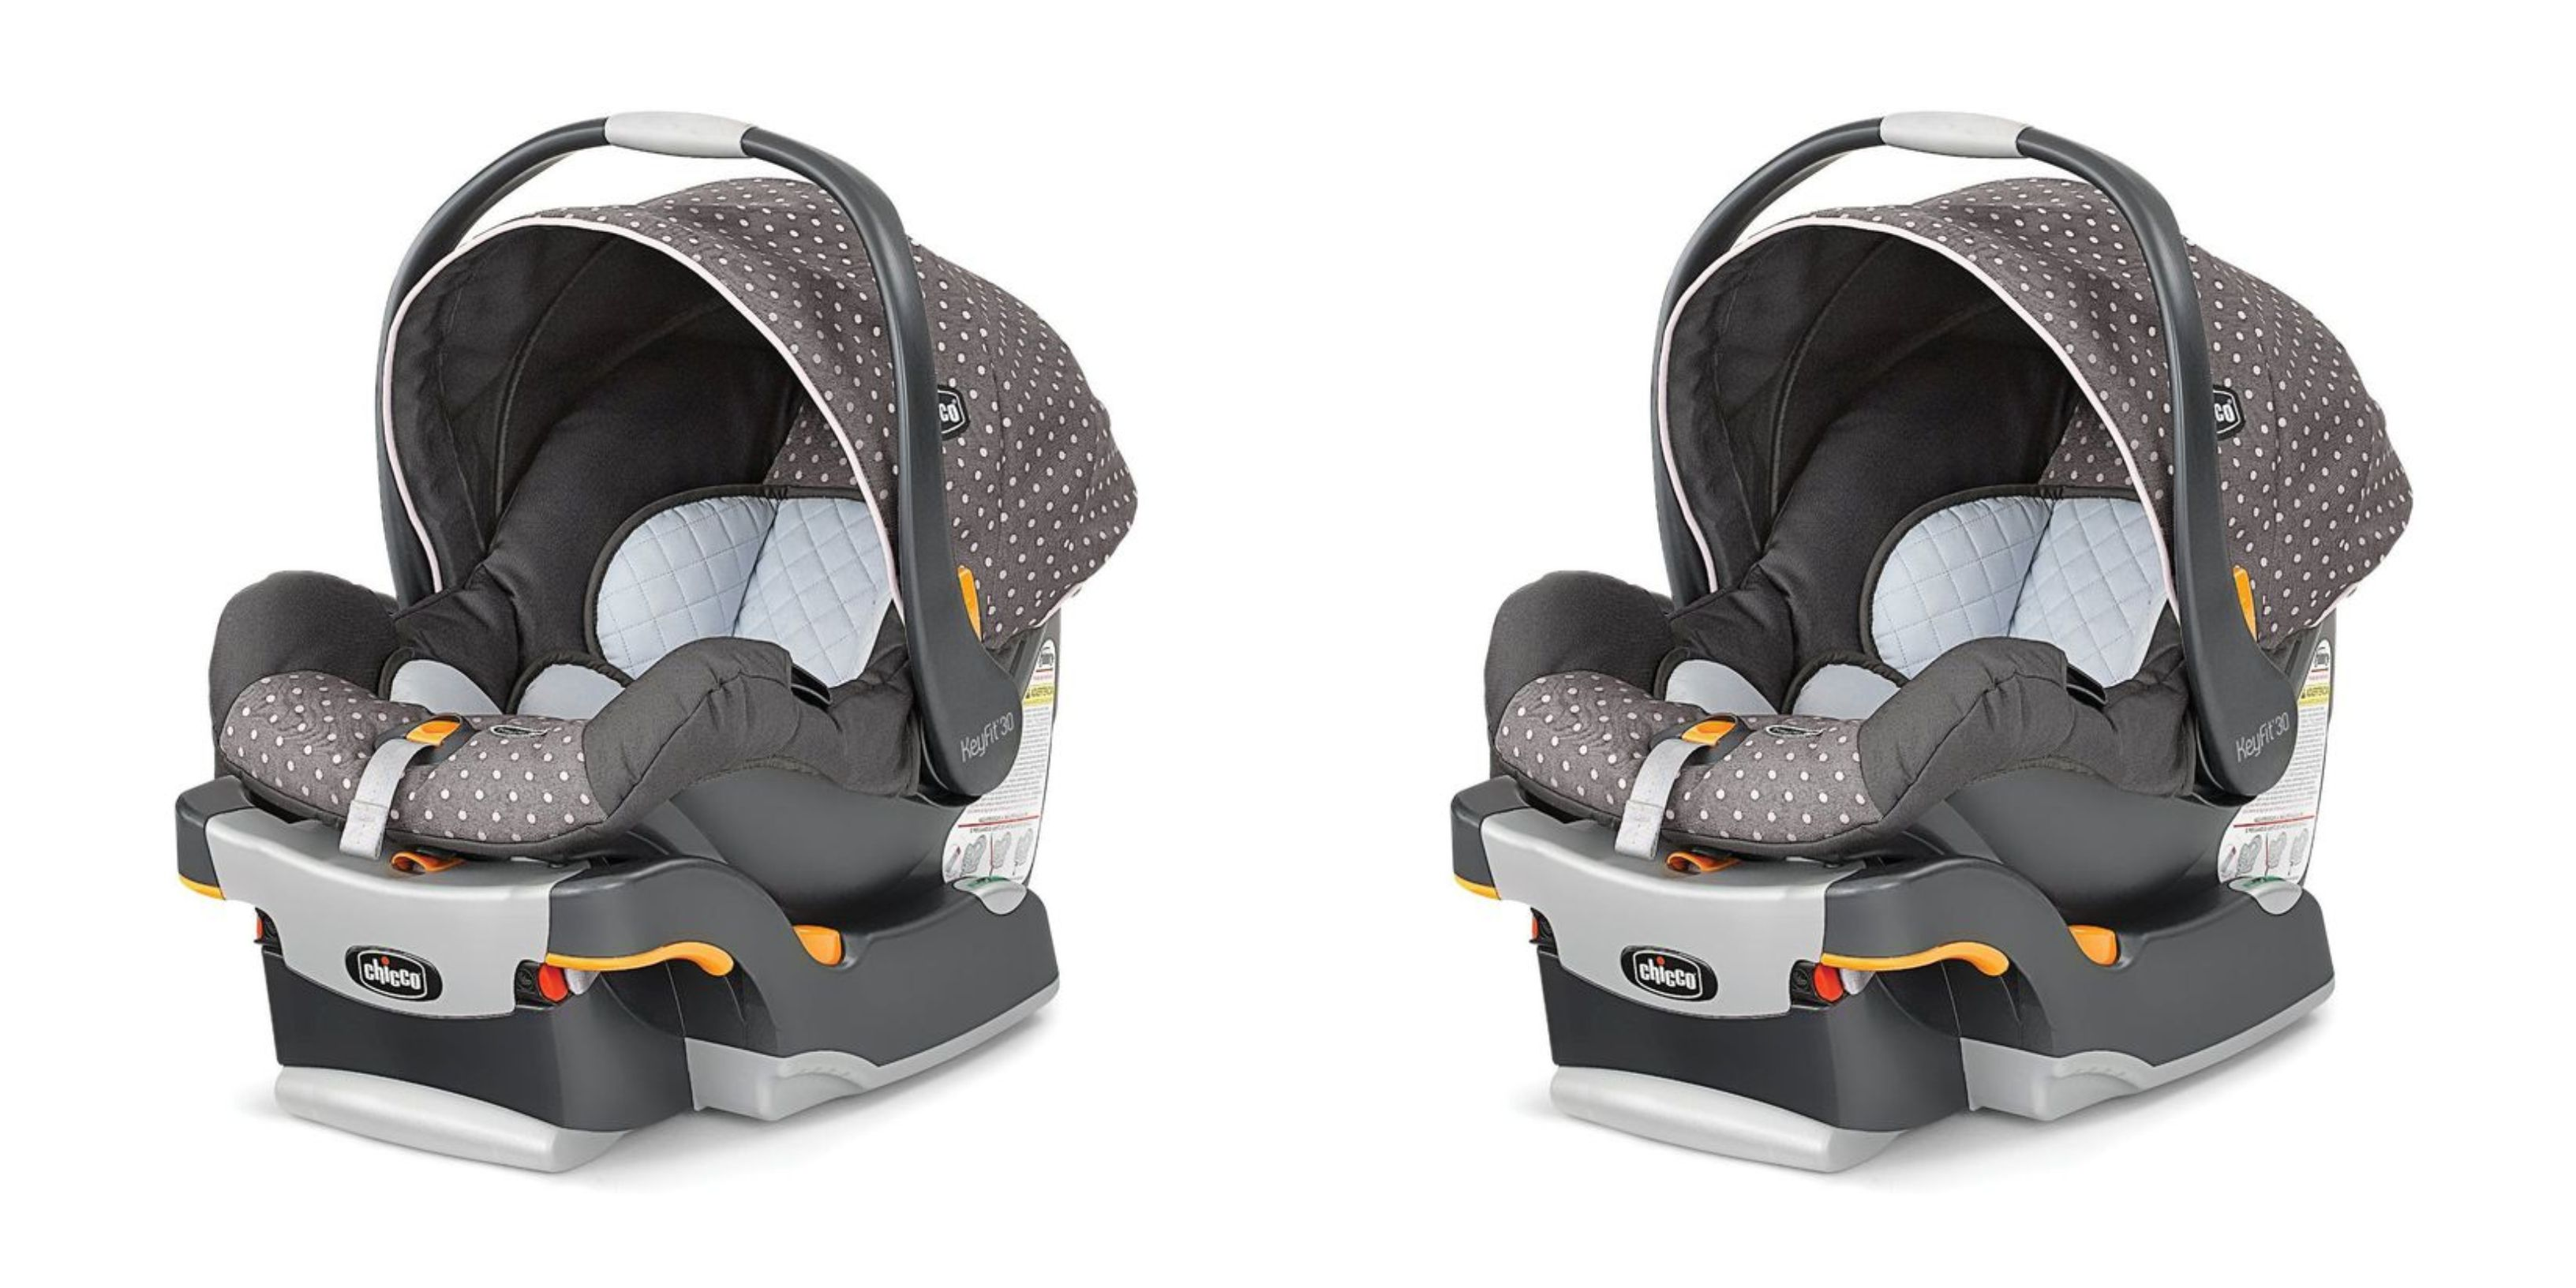 Terrific Chicco Key Fit 30 Infant Car Seat Review 2018 2019 Gmtry Best Dining Table And Chair Ideas Images Gmtryco